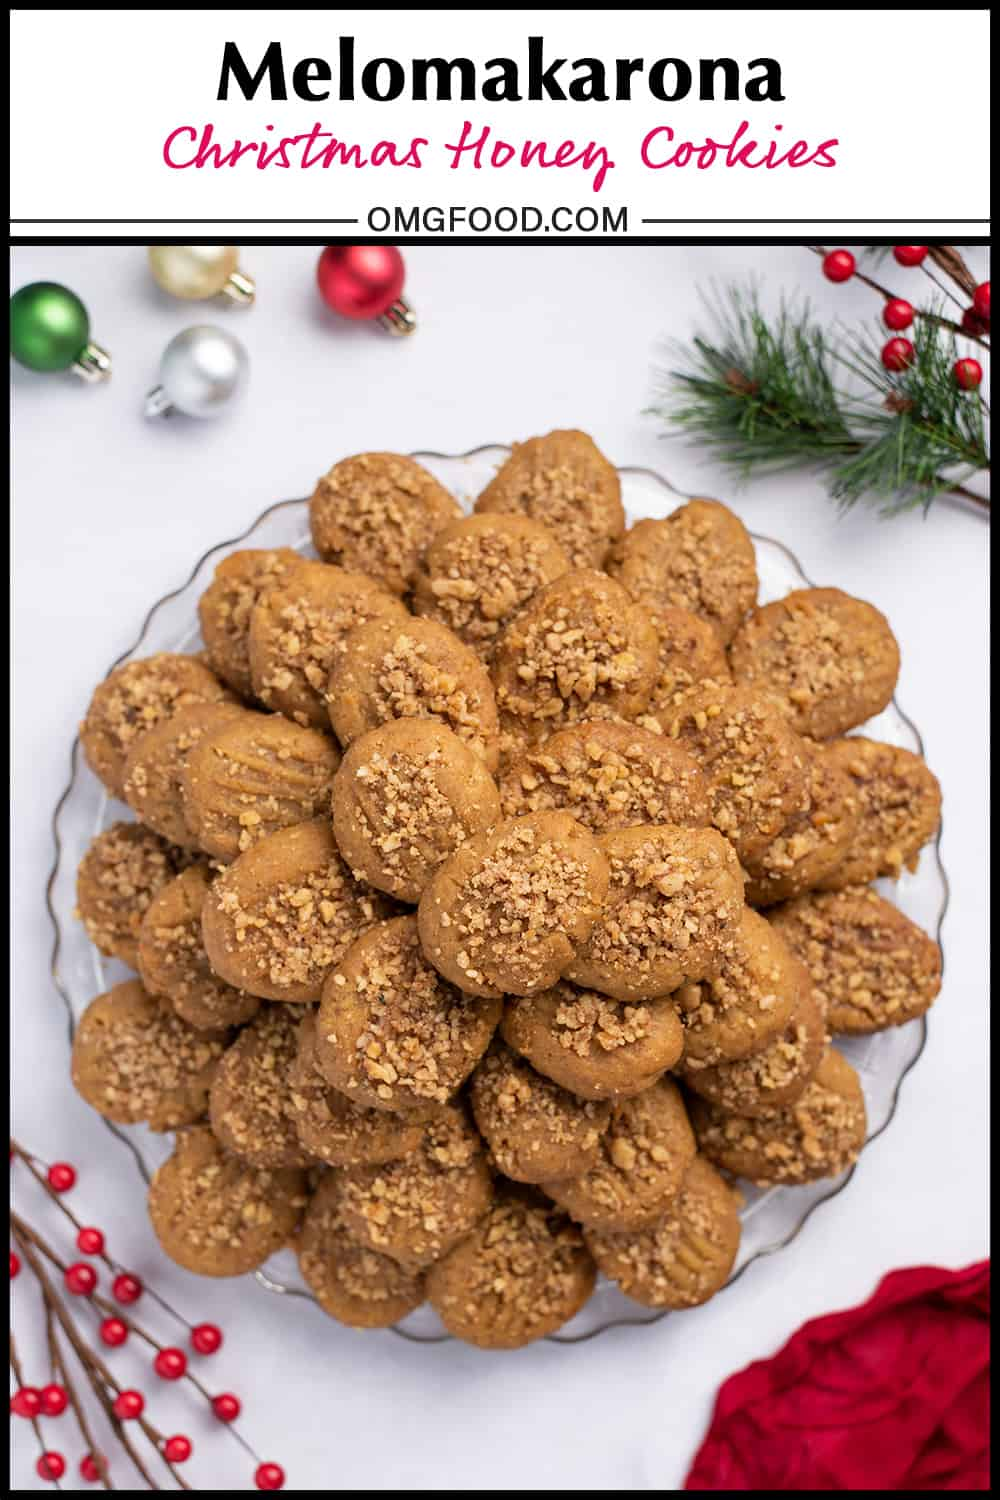 Pinterest banner of a platter of Greek honey cookies and small ornaments on a tabletop.